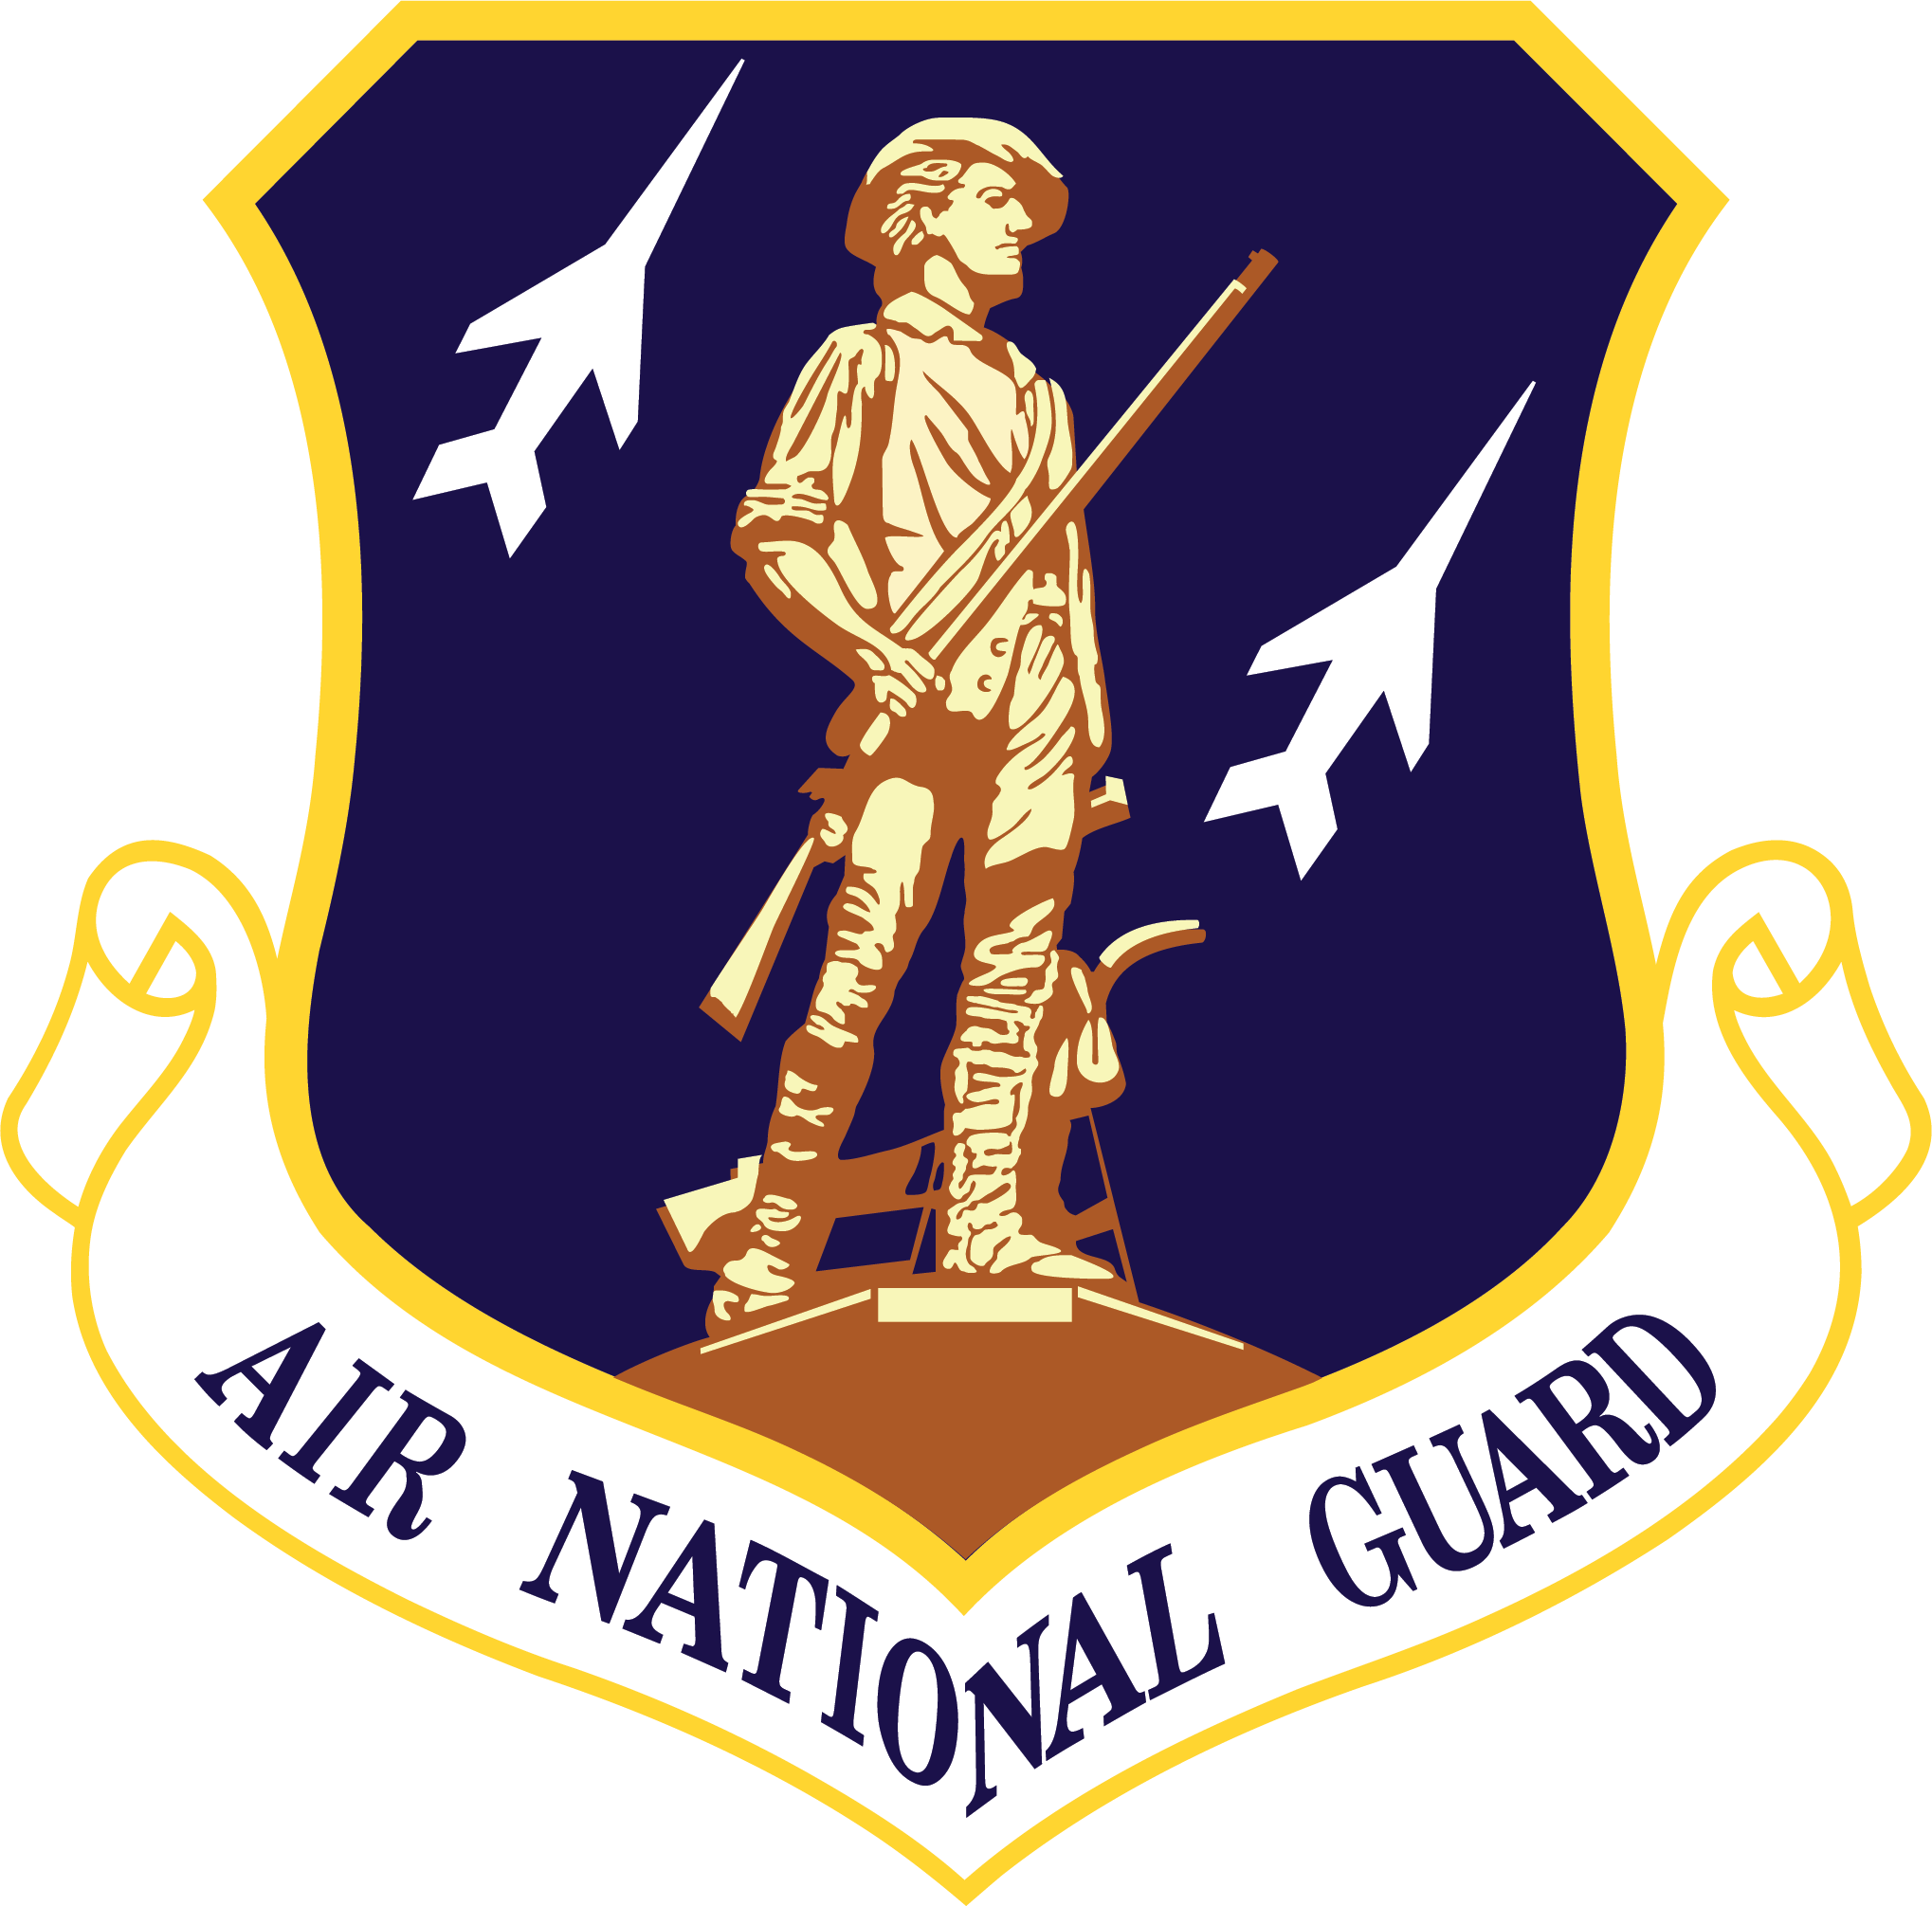 Air national guard png. About welcome to the